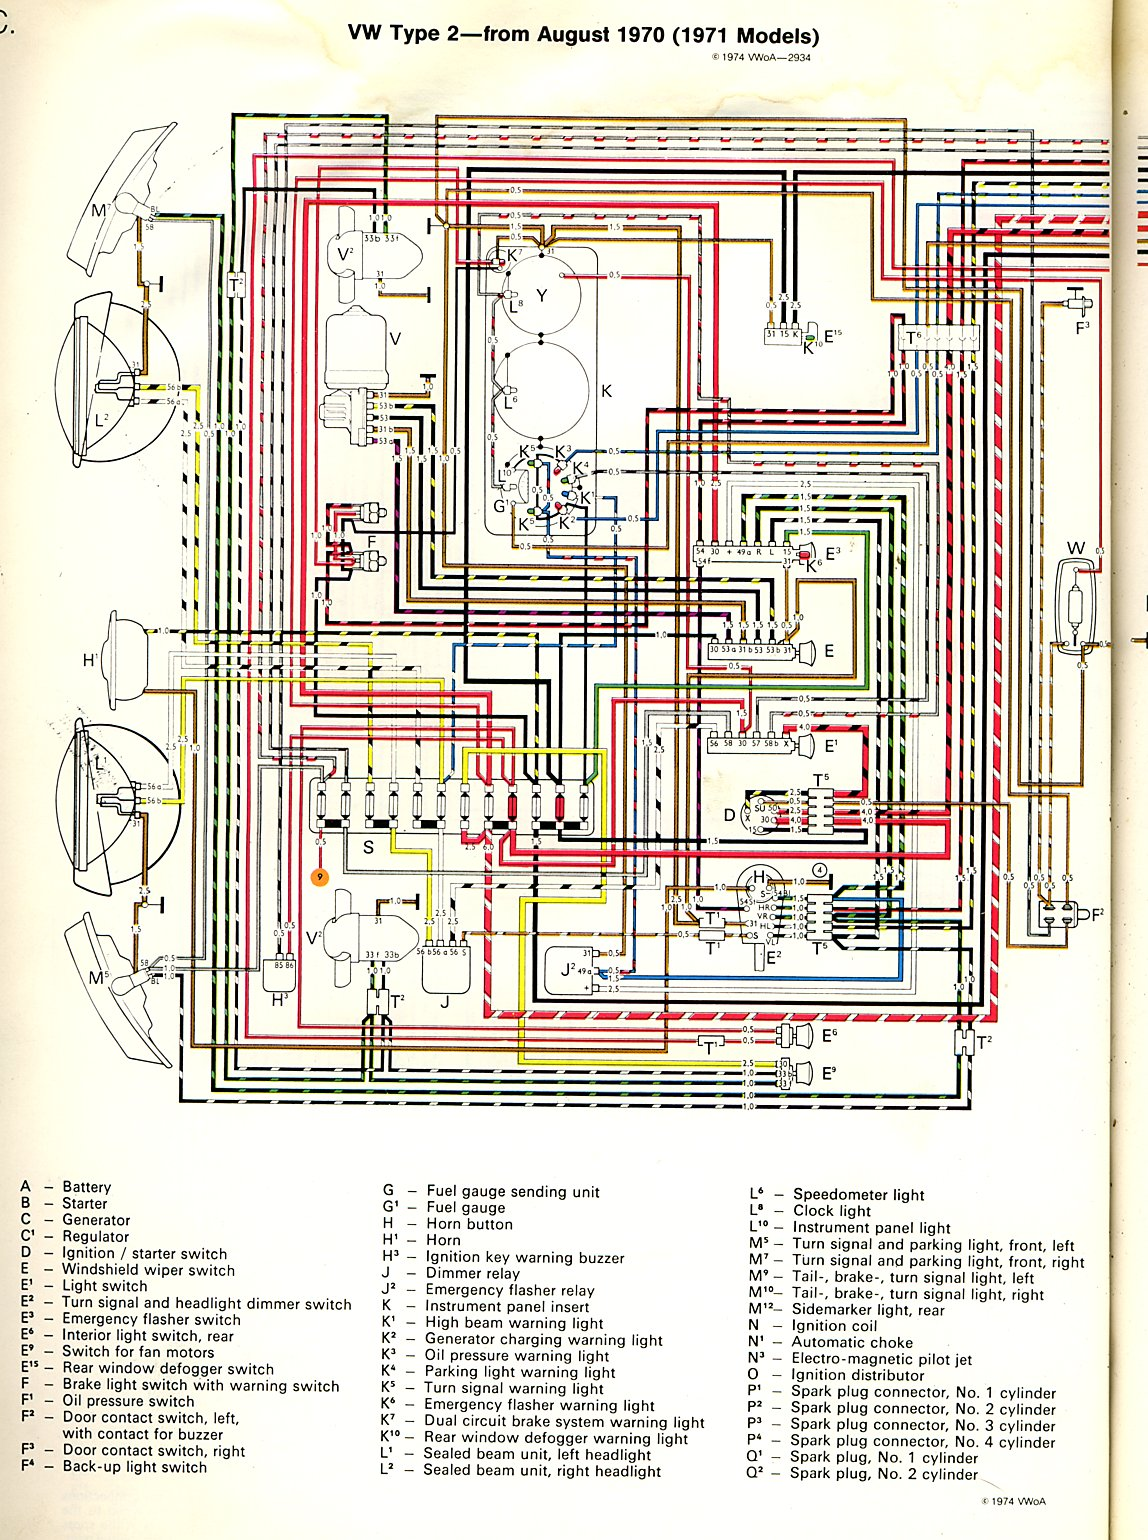 Wiring Diagram 68 Vw Bus vw t25 wiring diagram vw beetle hazard switch  wiring - soul.123vielgeld.deWiring Schematic Diagram and Worksheet Resources